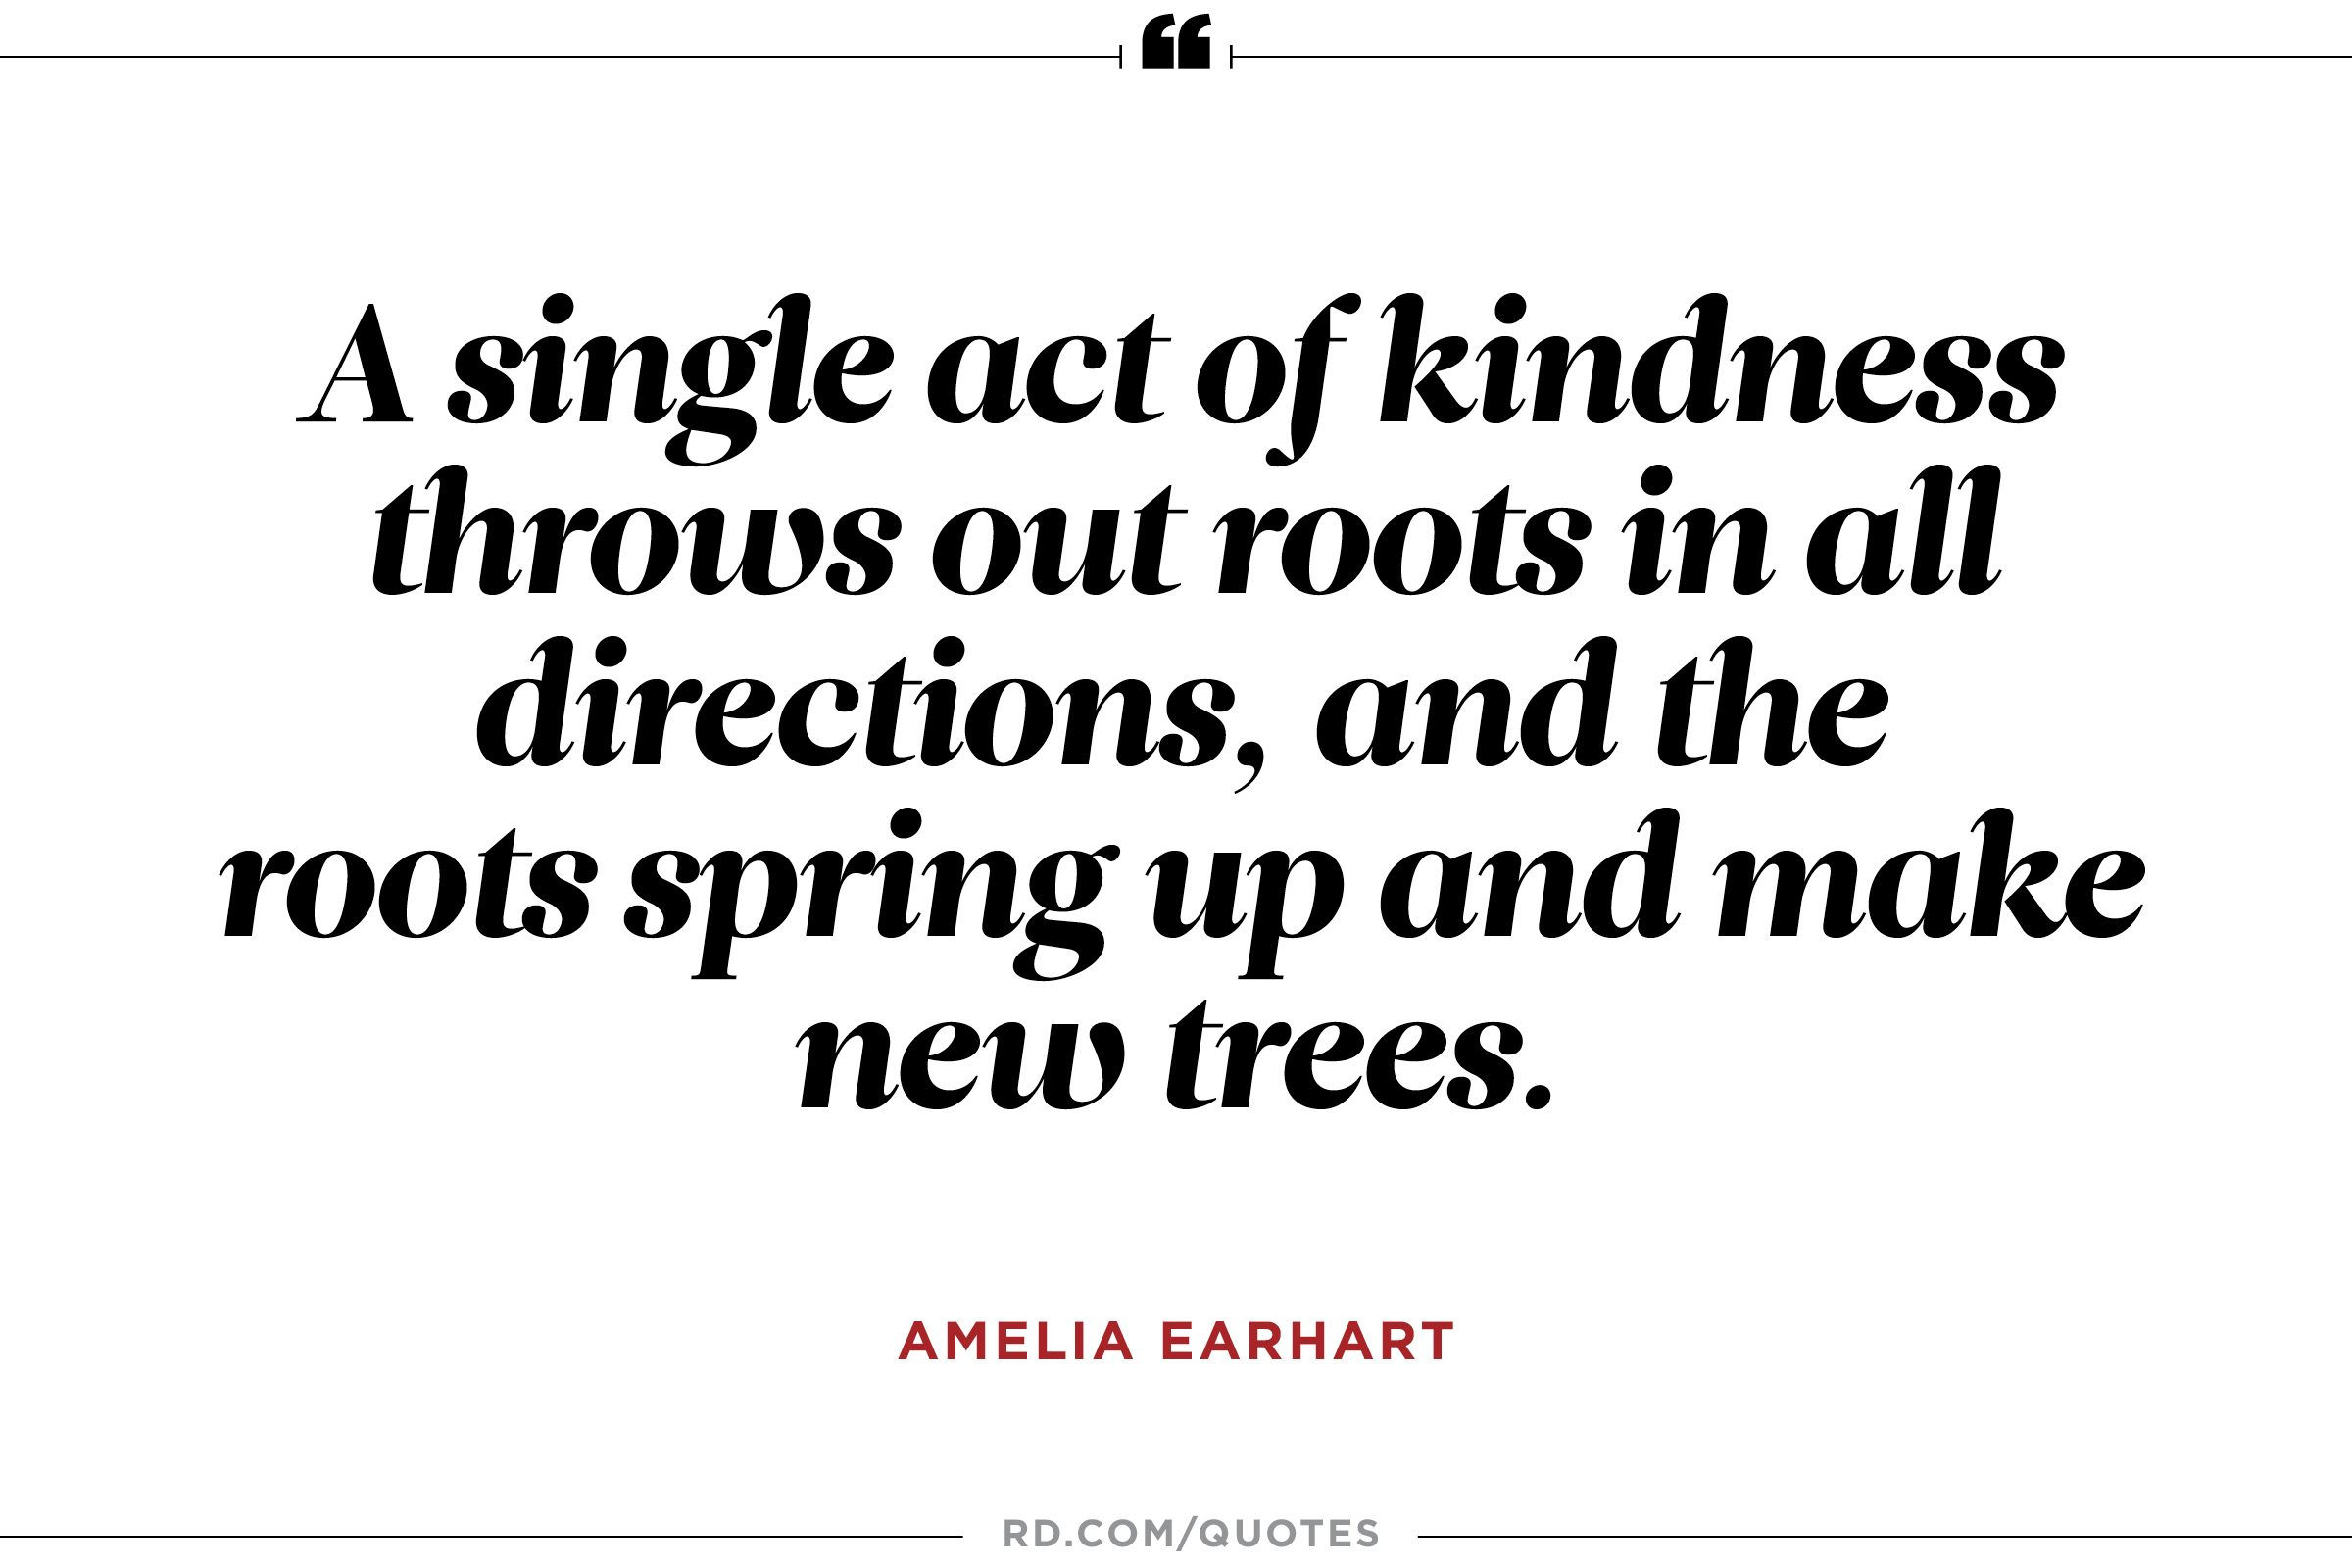 Amelia Earhart Quotes 10 Amelia Earhart Quotes to Propel You to Greatness | Reader's Digest Amelia Earhart Quotes